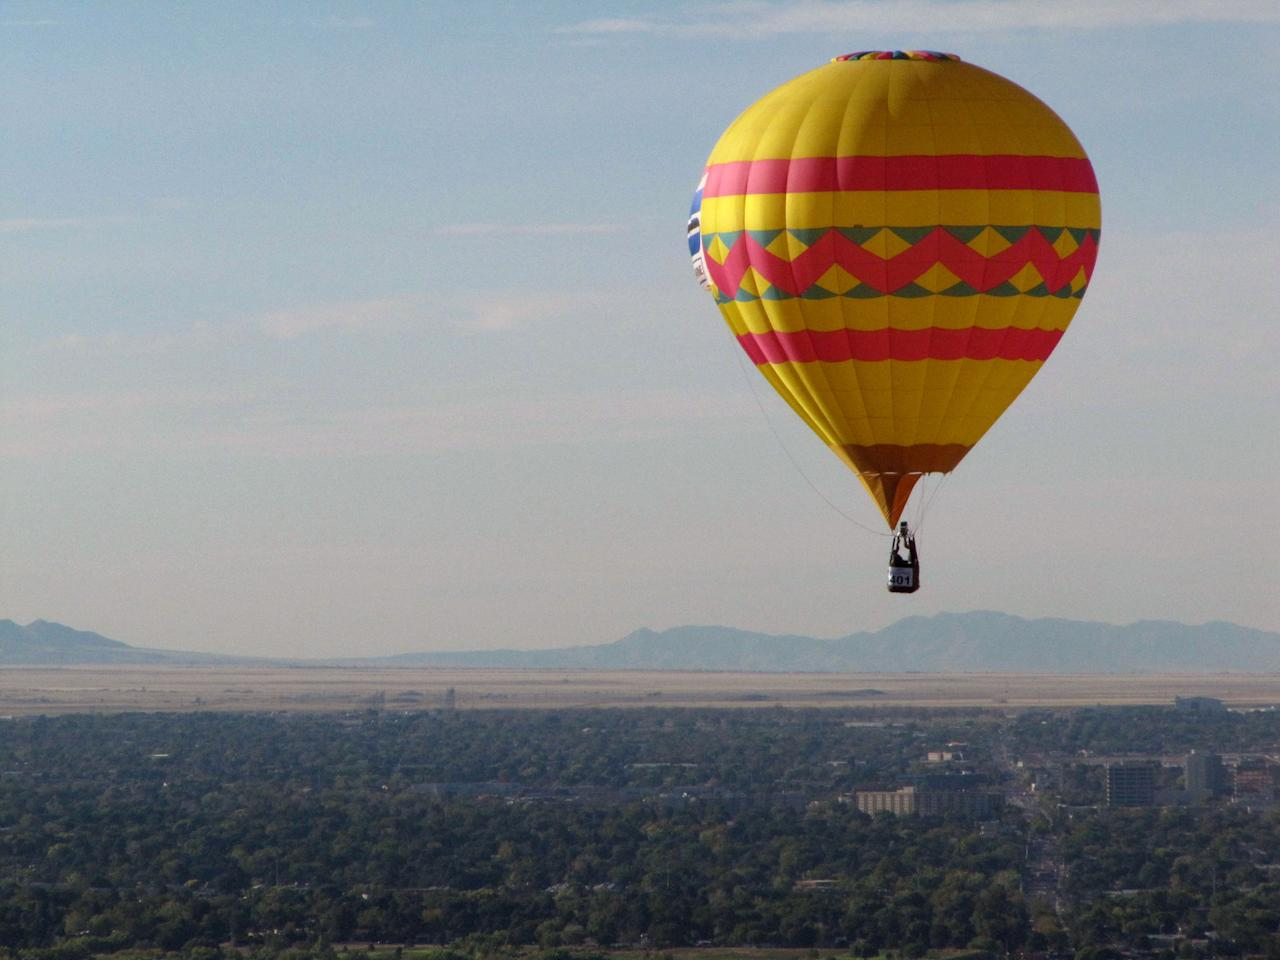 A hot air balloon floats over Albuquerque, N.M., on Tuesday, Oct. 5, 2010. The annual Albuquerque International Balloon Fiesta has attracted about 500 balloons and thousands of spectators.